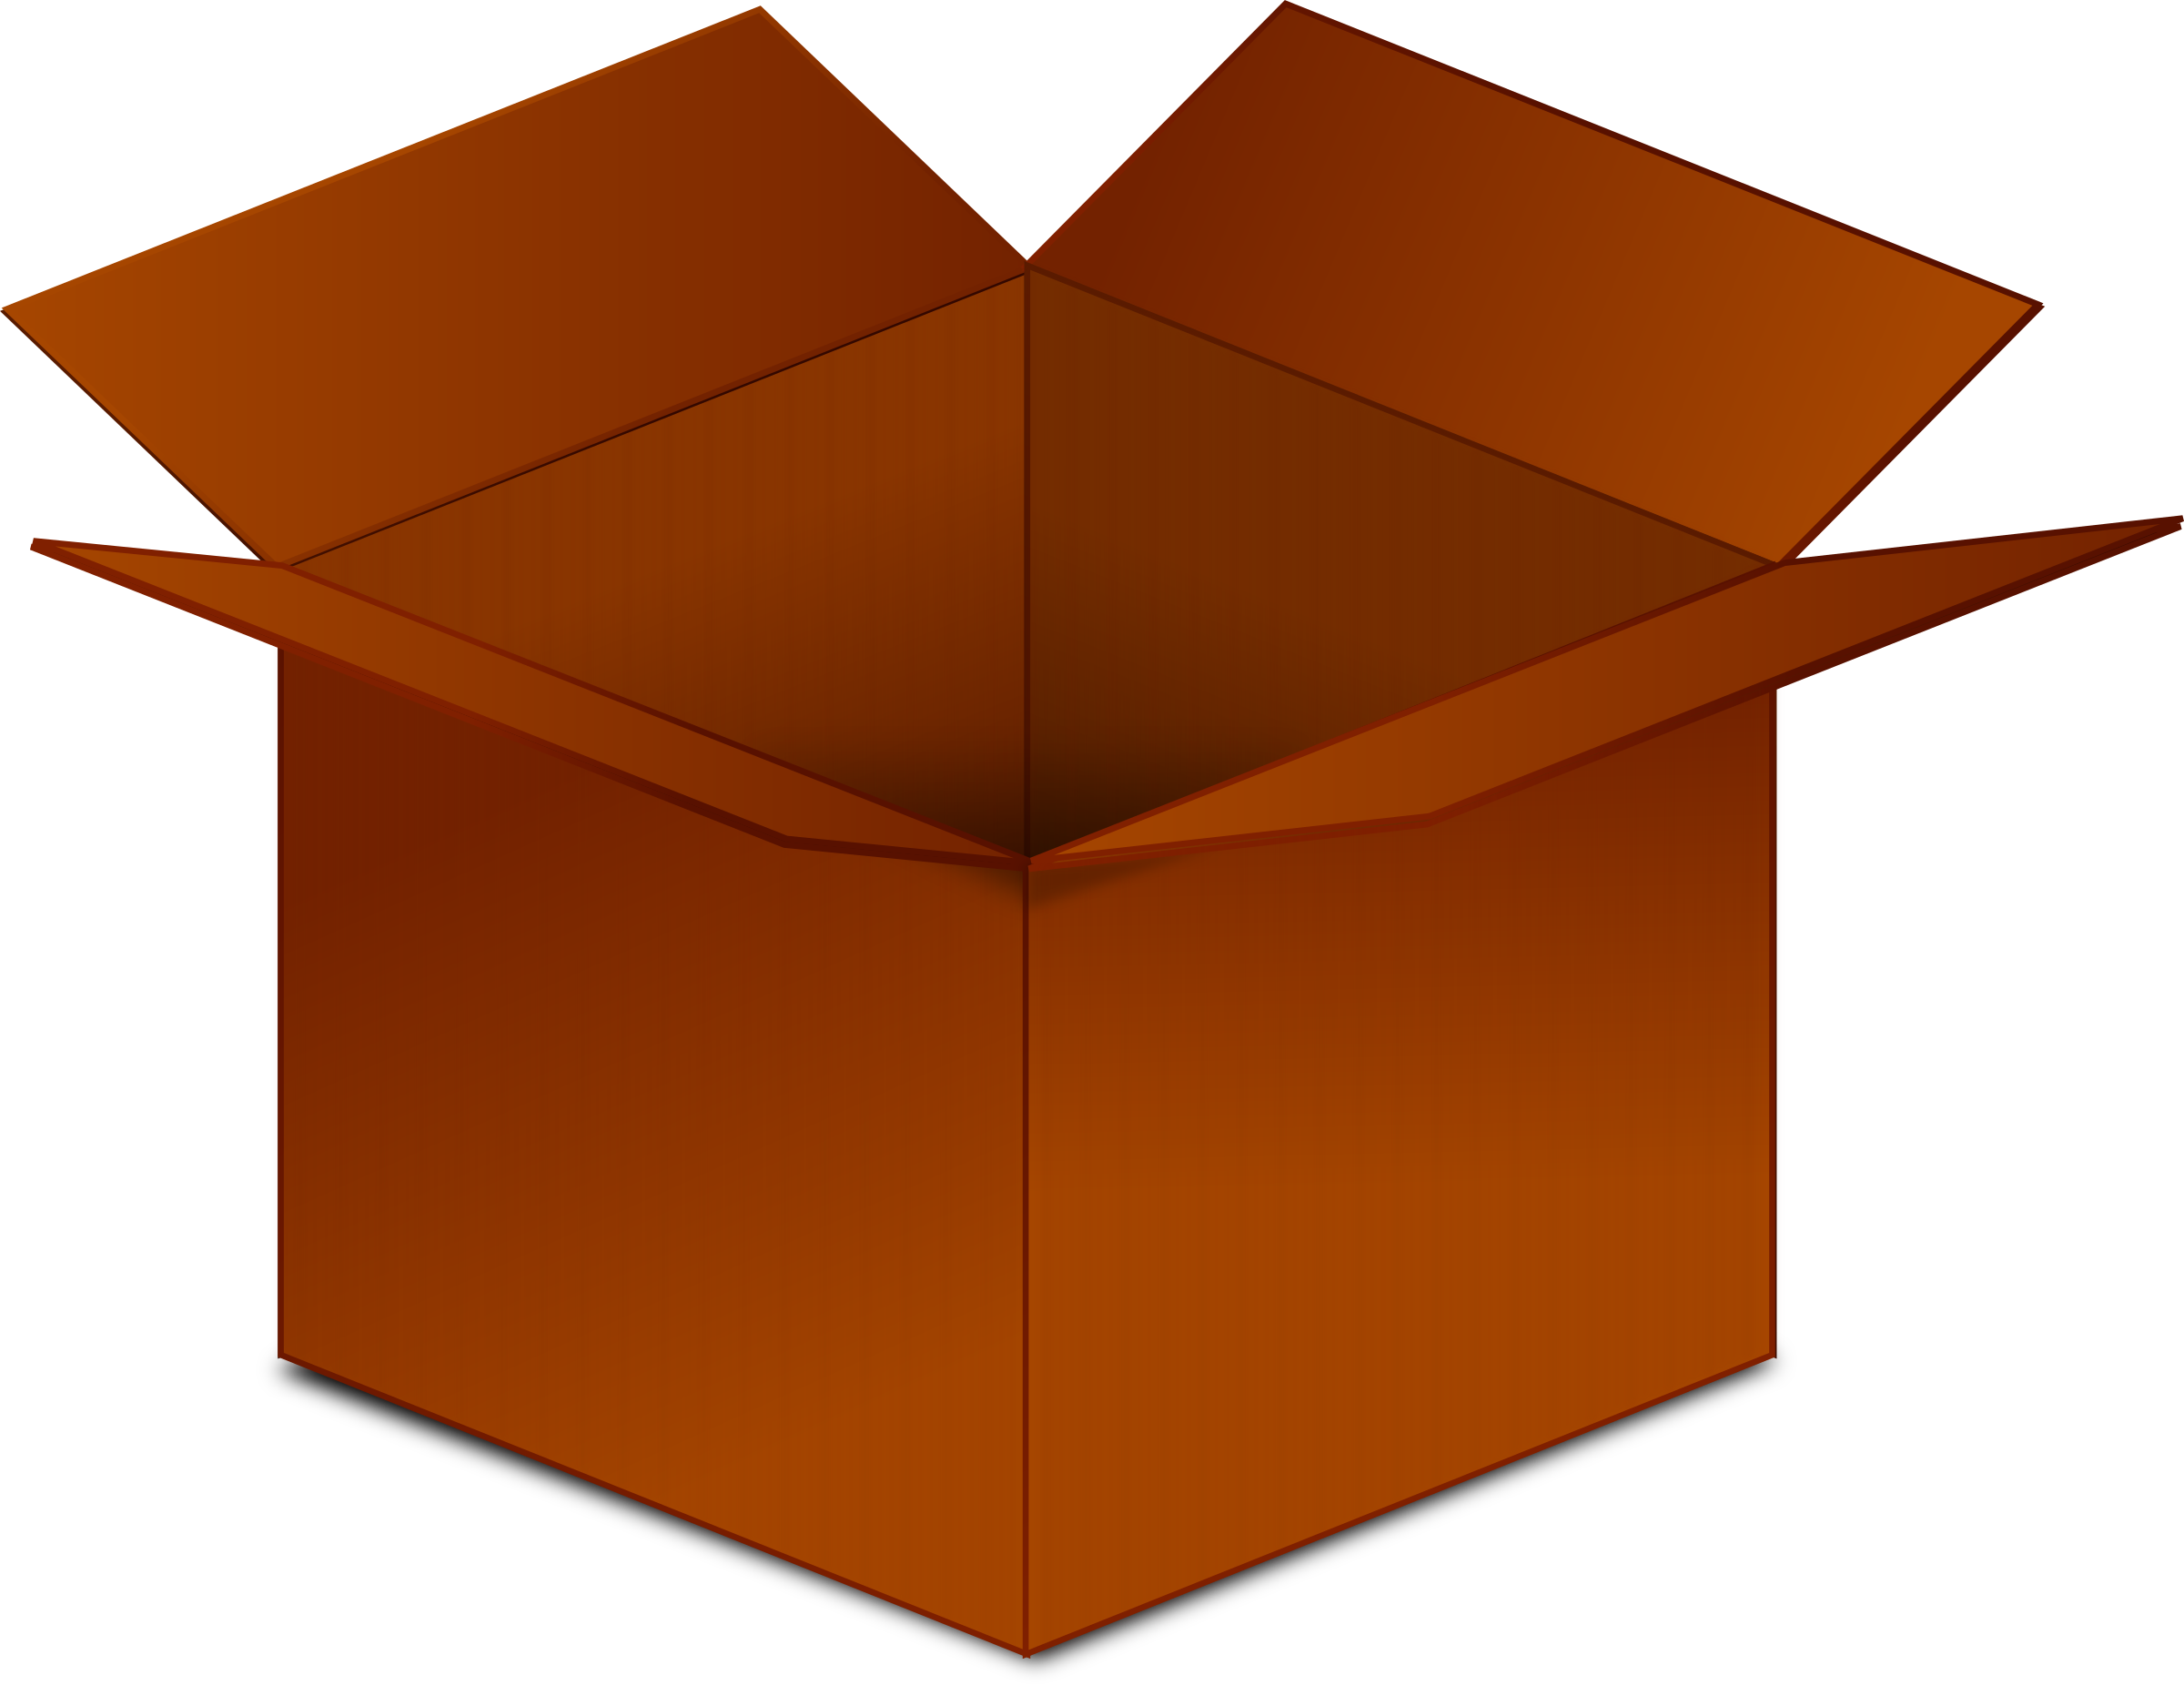 Box by Spack